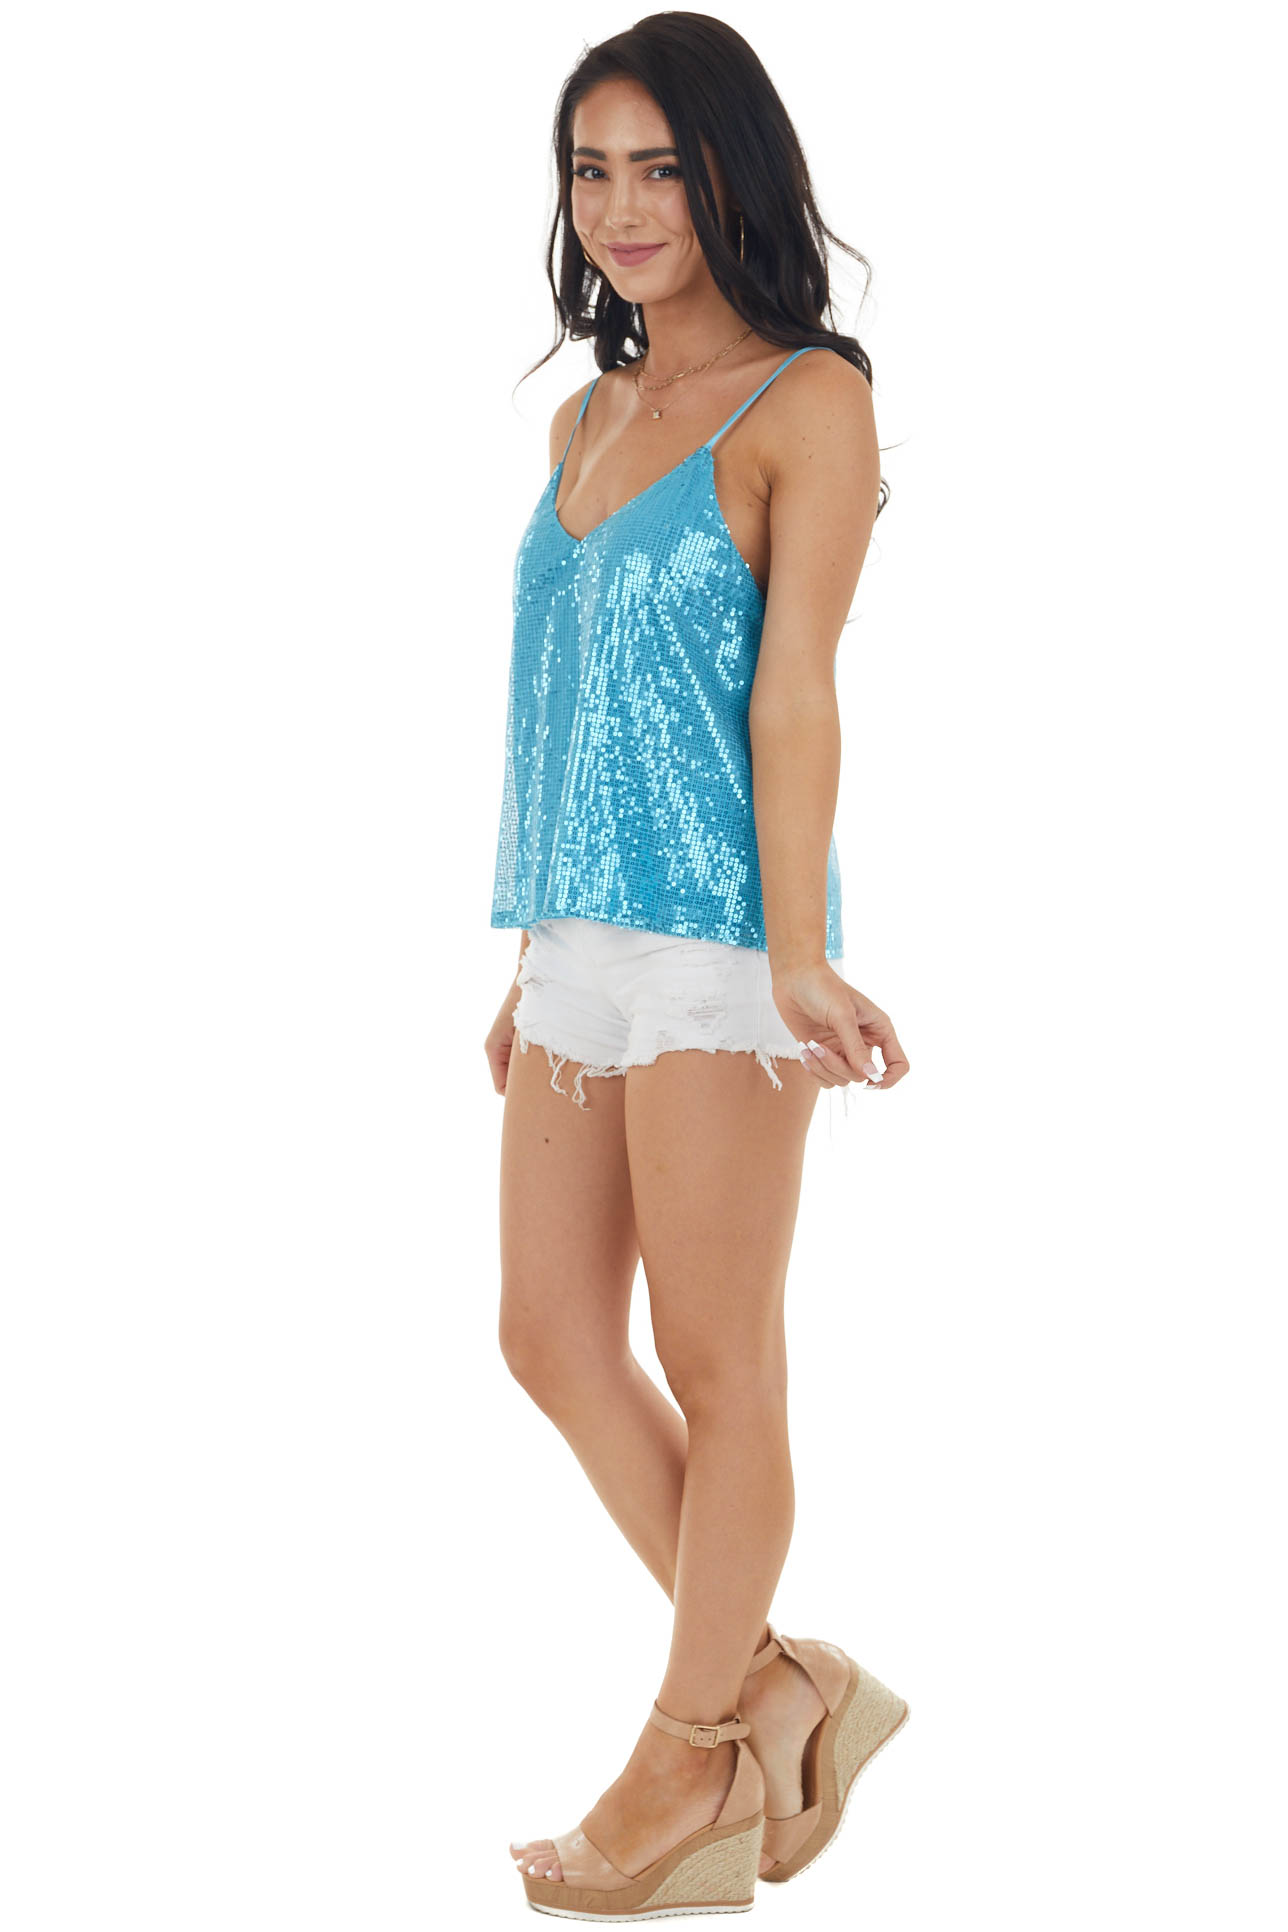 Ocean Blue Sequined Woven Camisole Tank Top with V Neckline